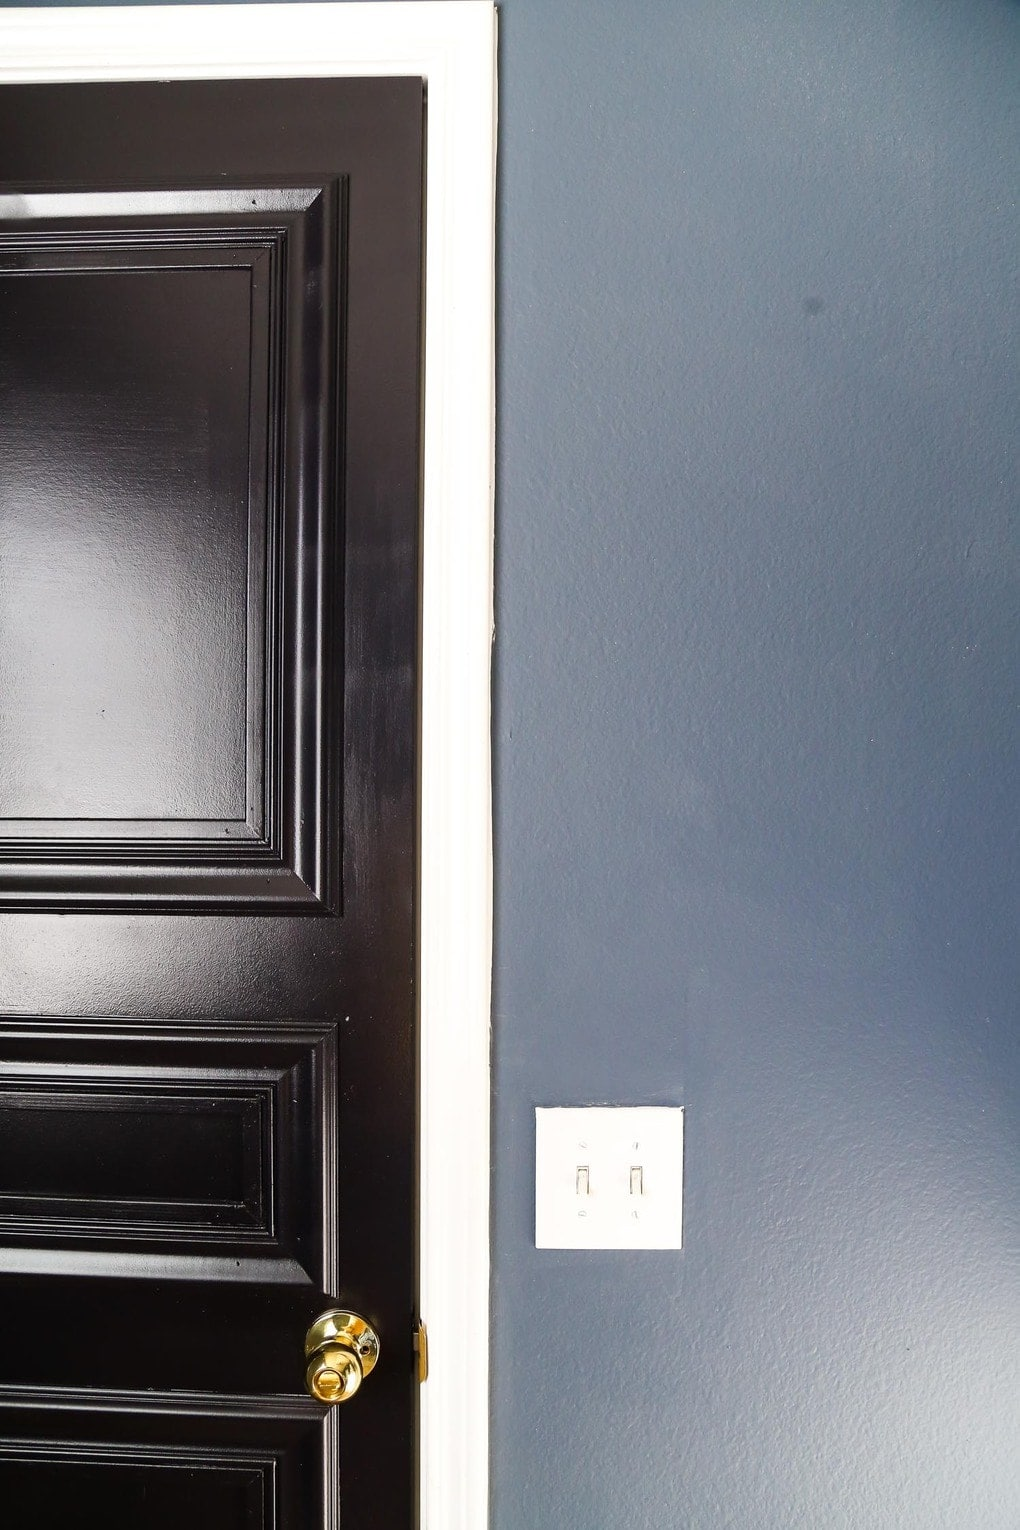 Quick tutorial for a DIY paneled interior door